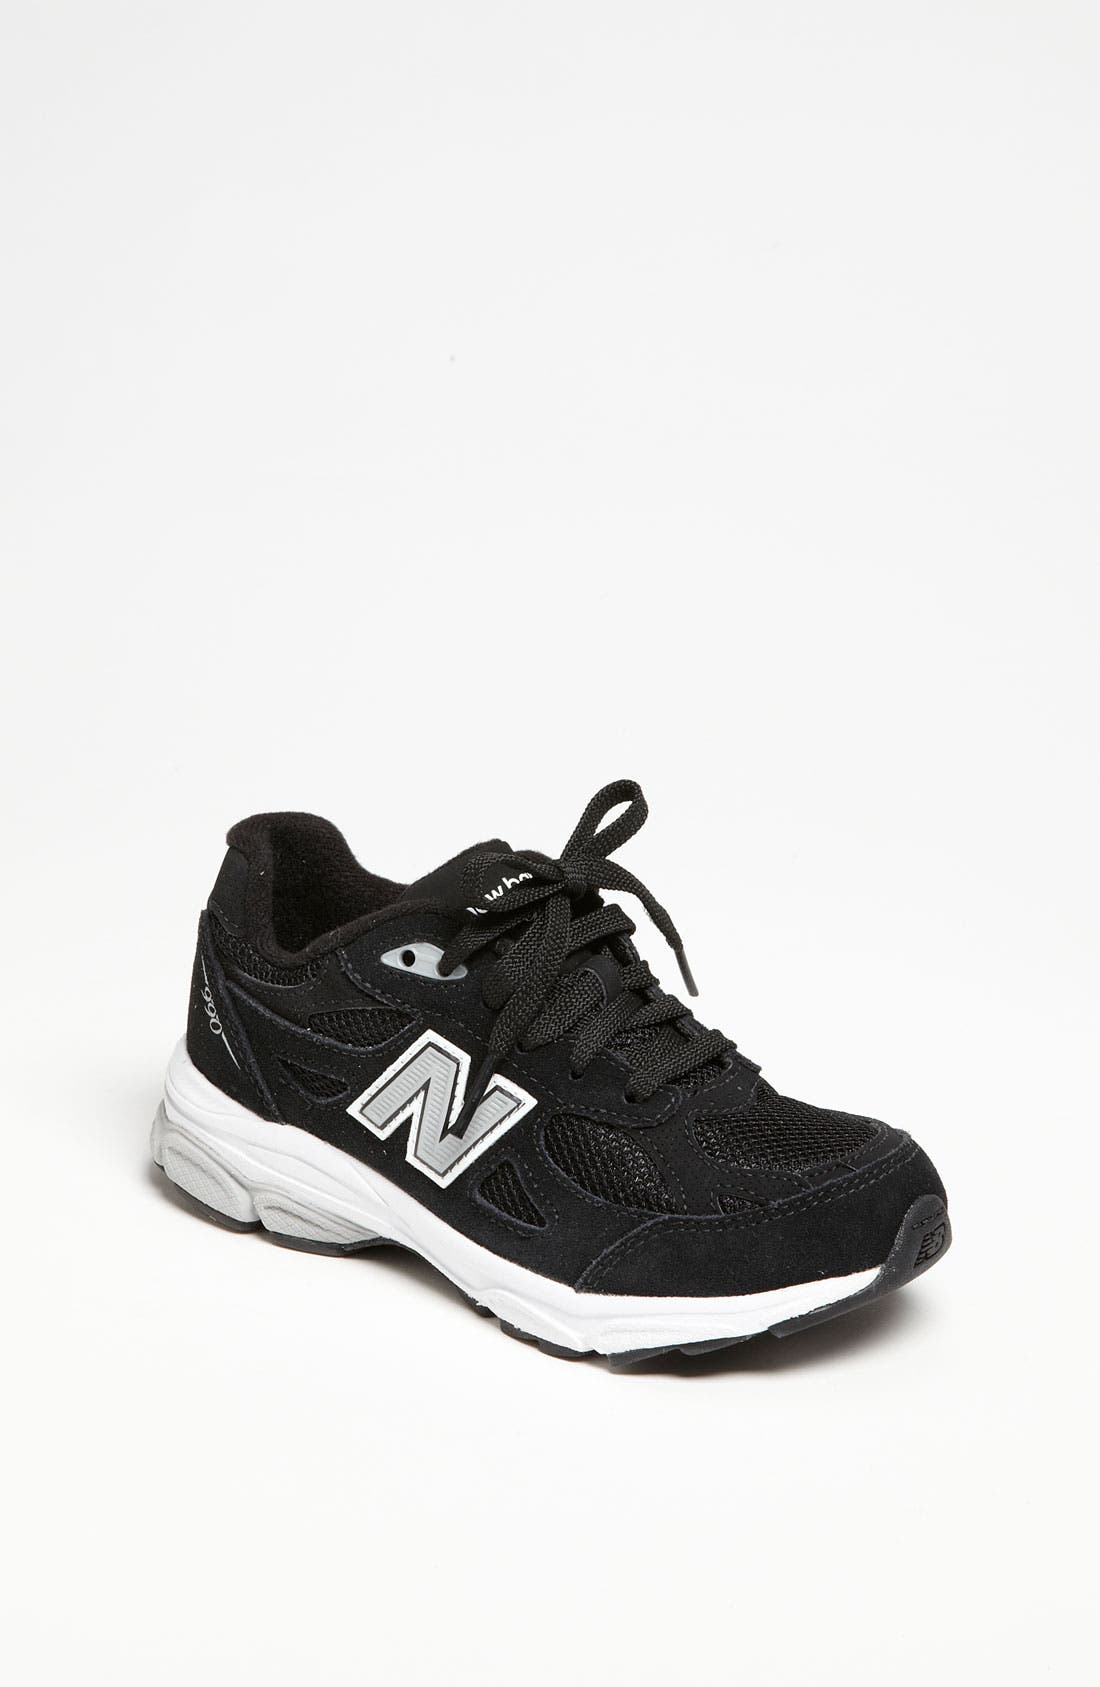 Alternate Image 1 Selected - New Balance '990' Sneaker (Online Only) (Baby, Walker, Toddler, Little Kid & Big Kid)